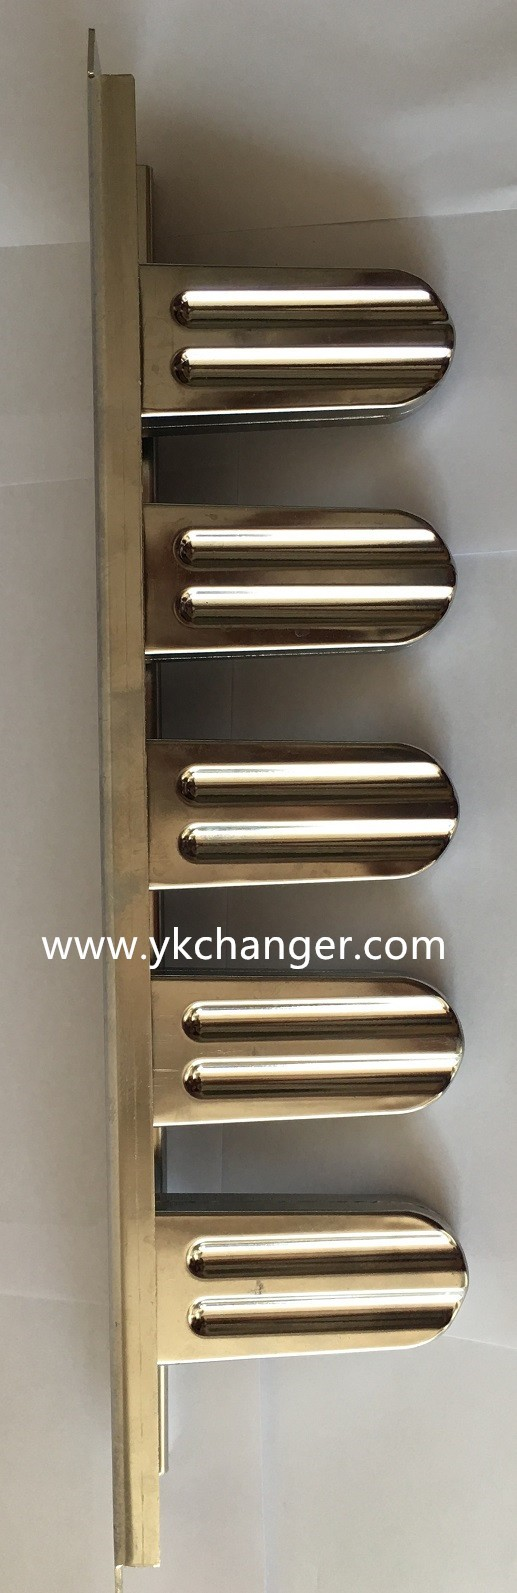 Donggou line ice cream mold strip stainless steel